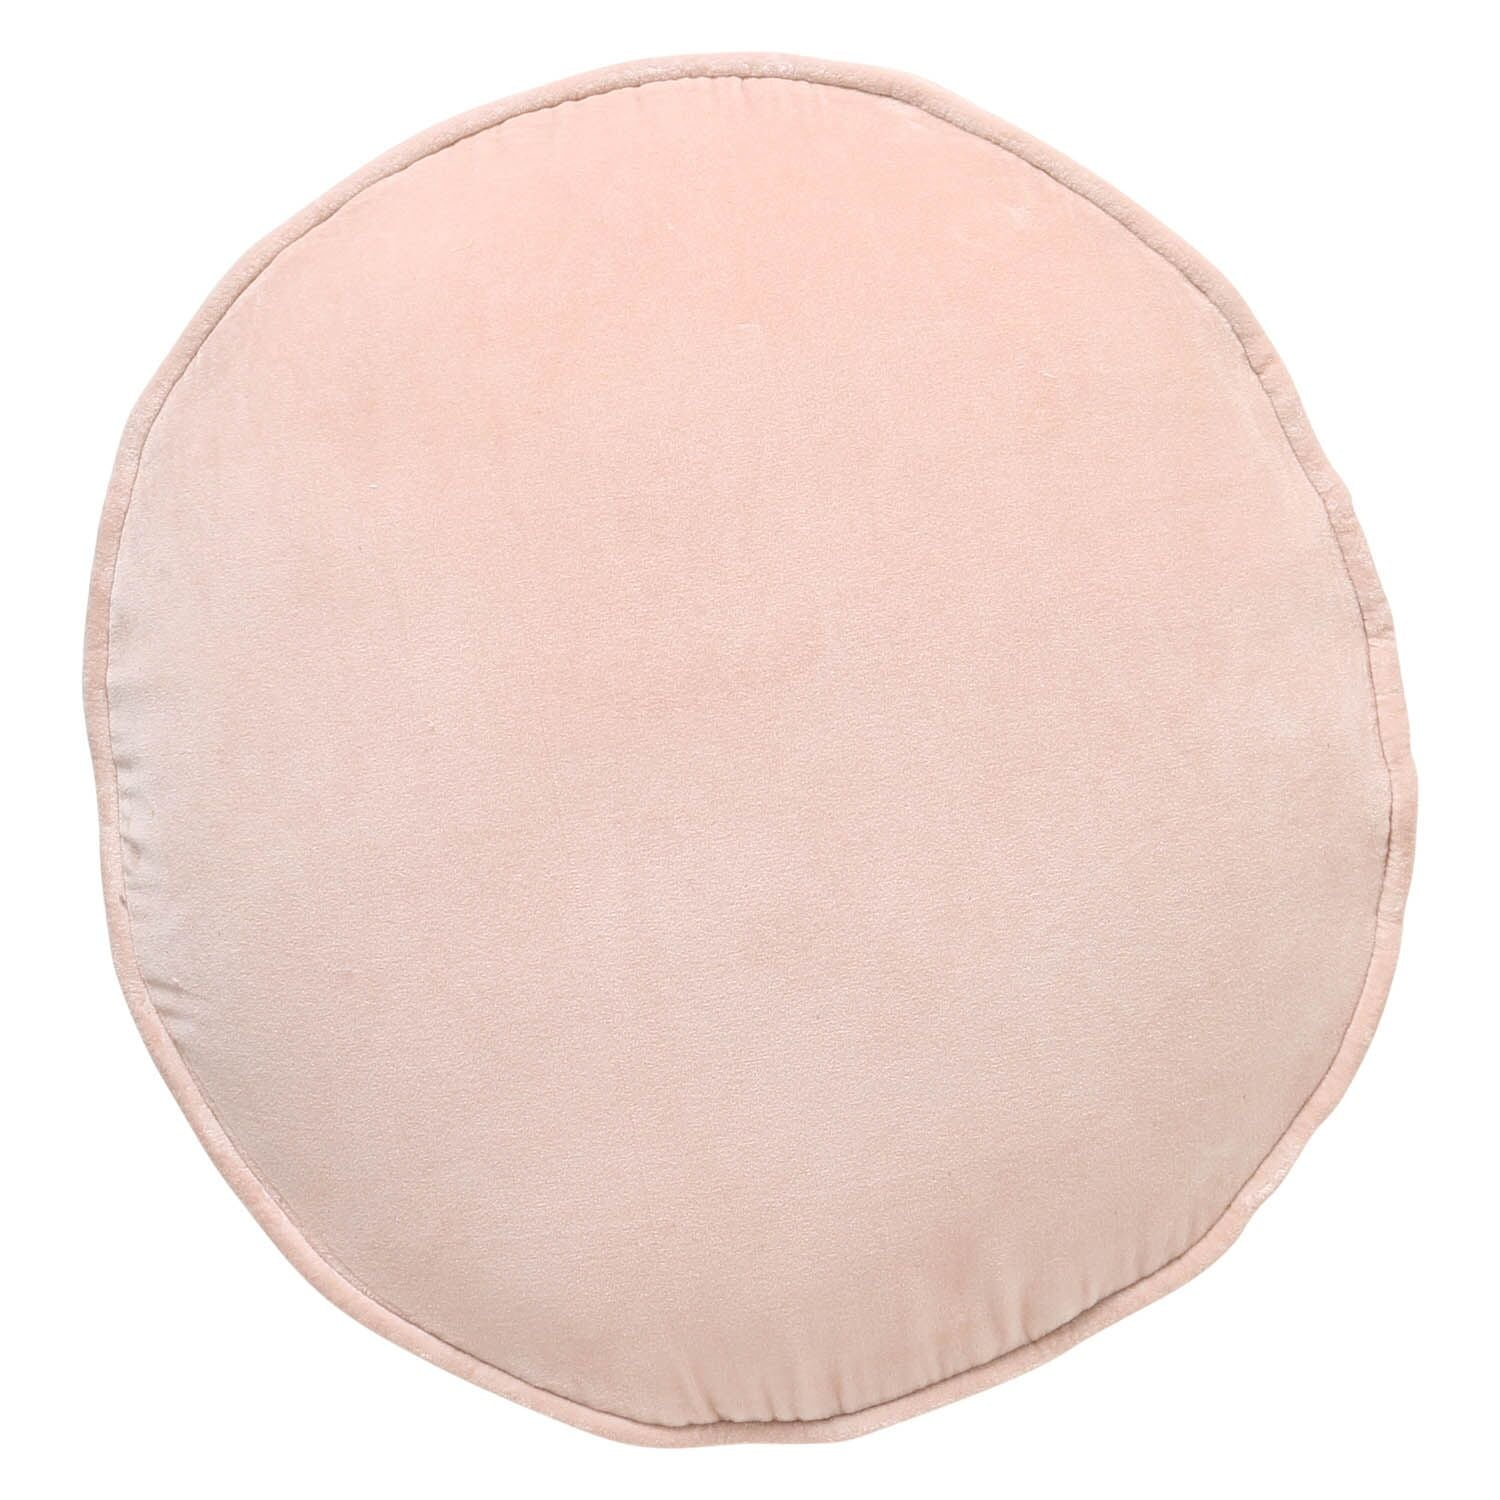 Kip & Co Spanish Villa Pink Velvet Pea Cushion - The Artisan Storeroom